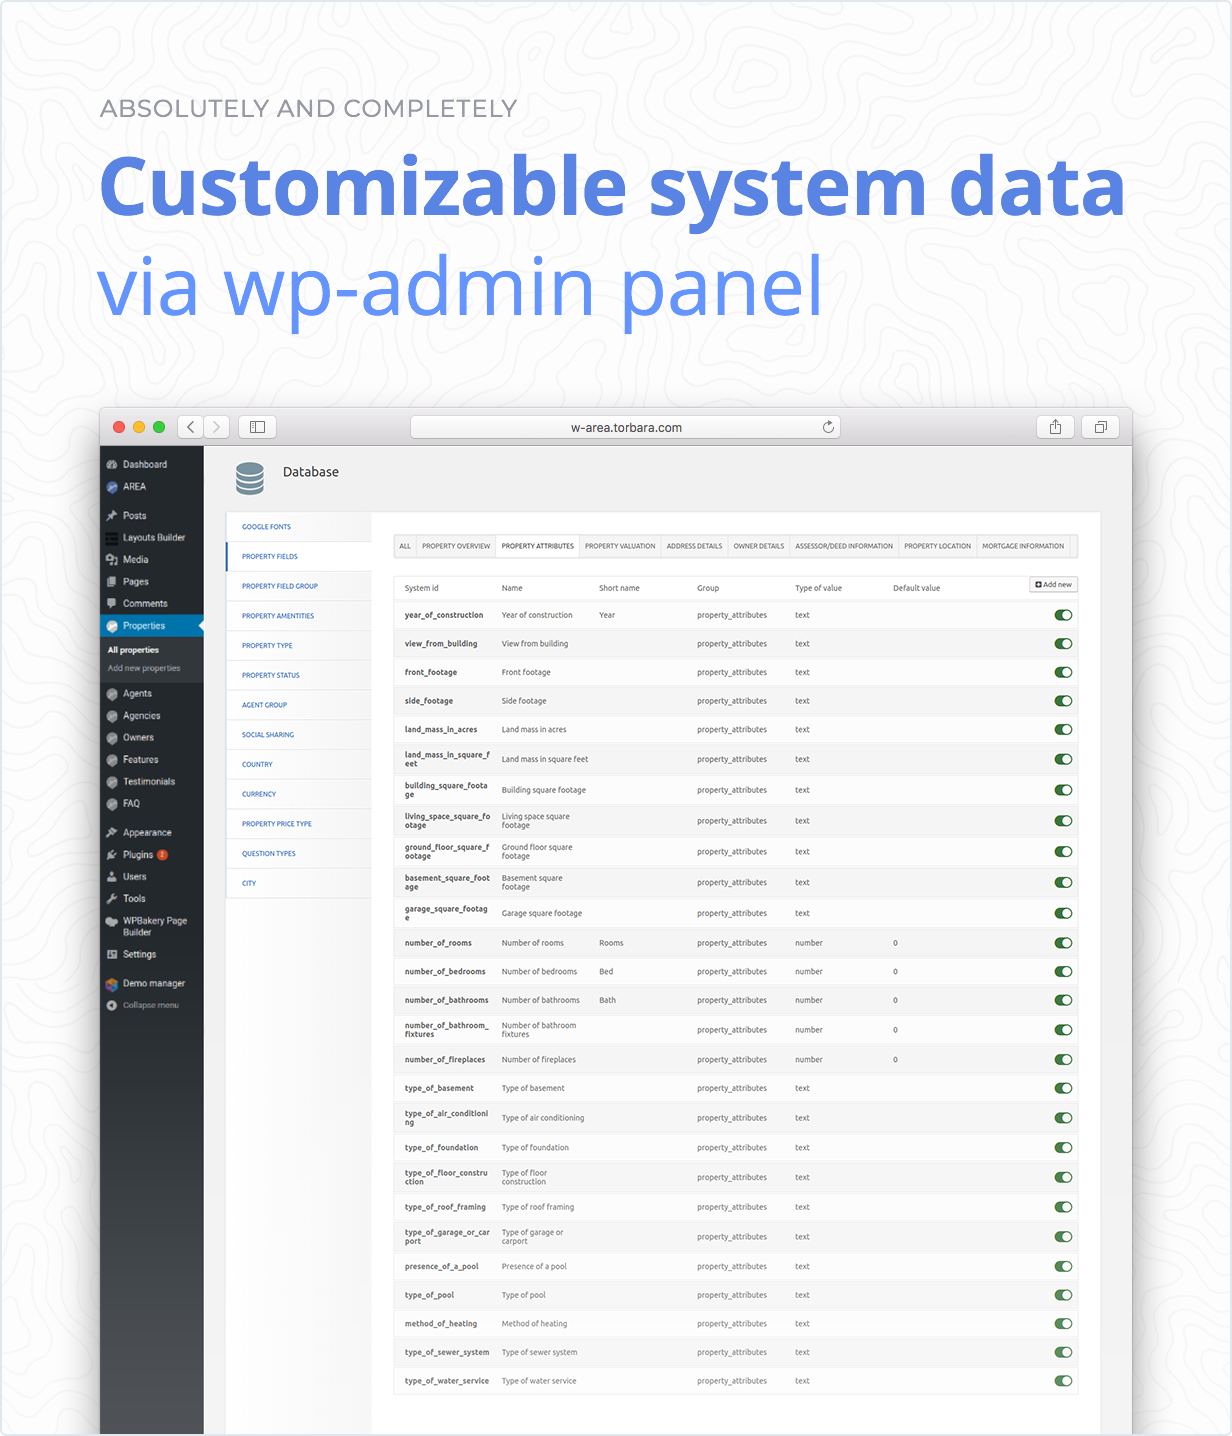 Customizable system data via admin panel